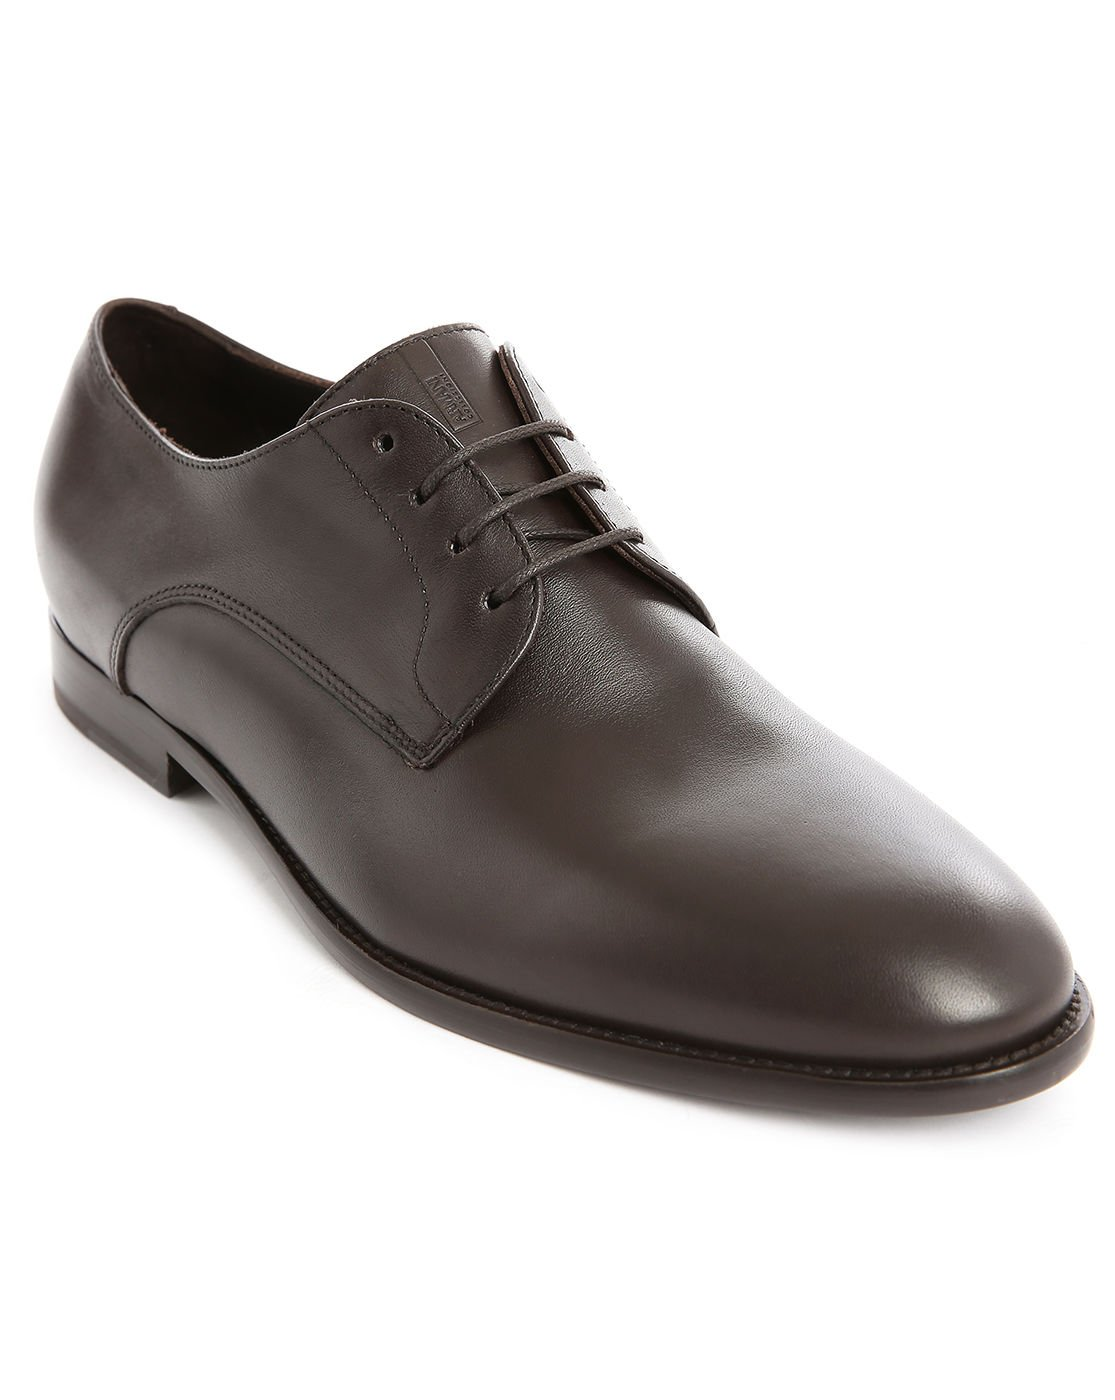 armani brown leather derby shoes with stitched soles in